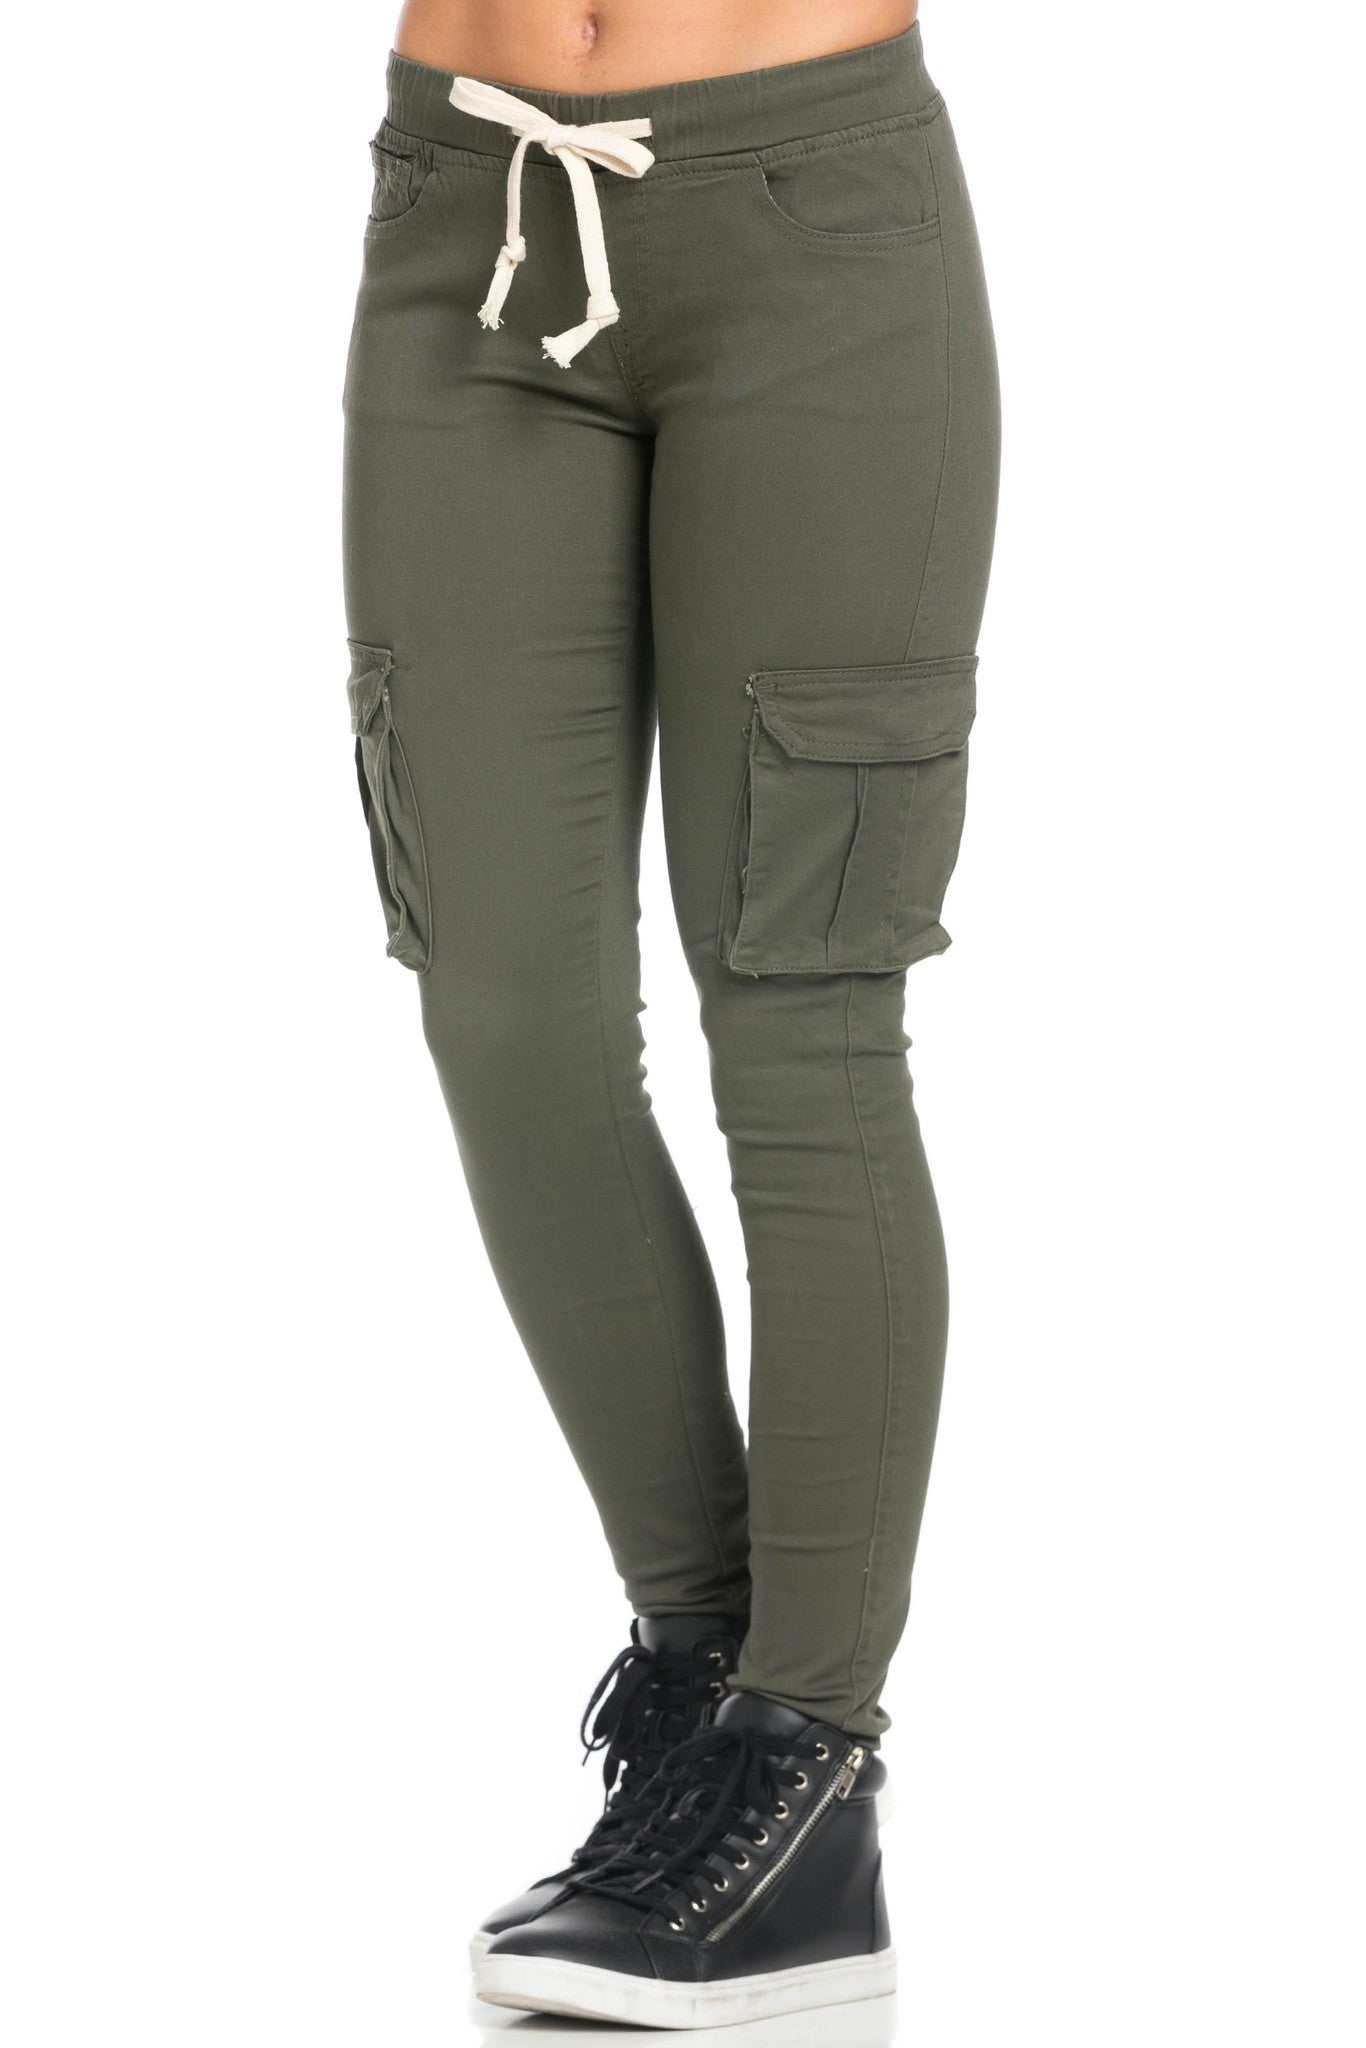 Mid Rise Skinny Olive Cargo Pants - Pants - My Yuccie - 1